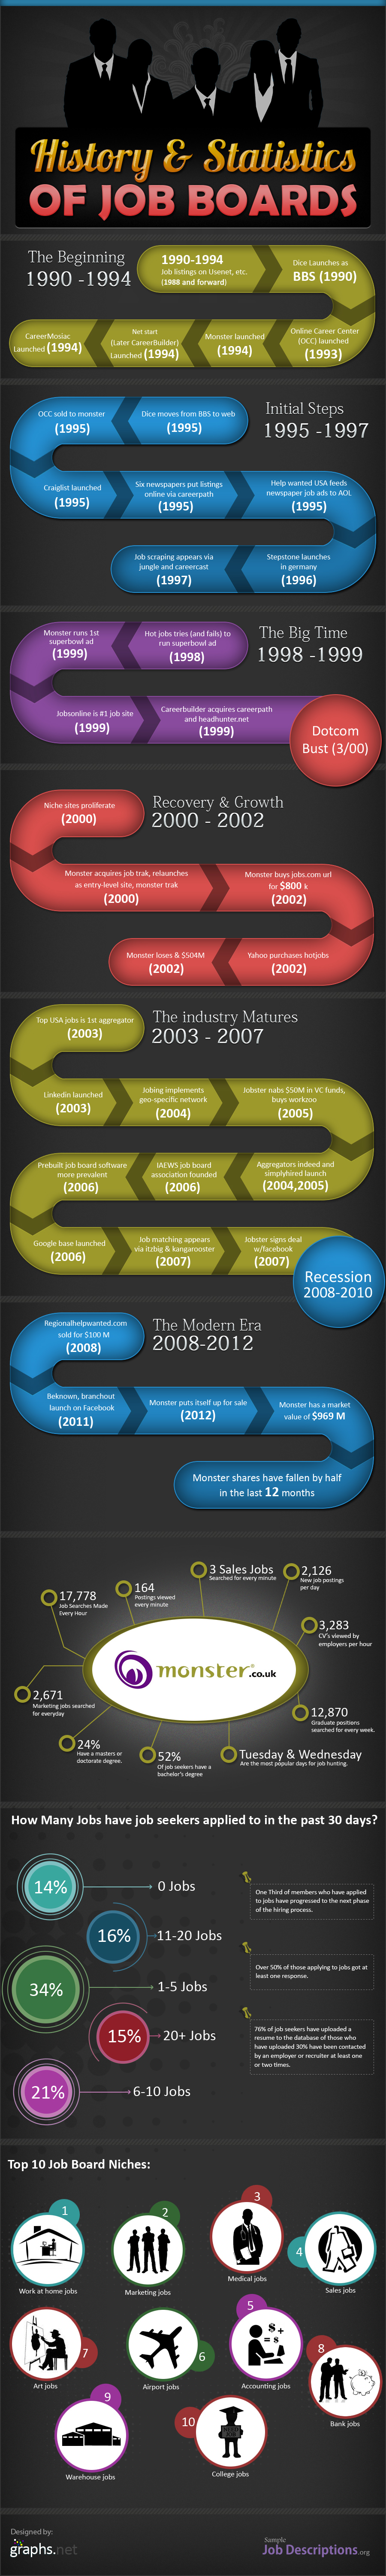 The History of the Job Board [INFOGRAPHIC]